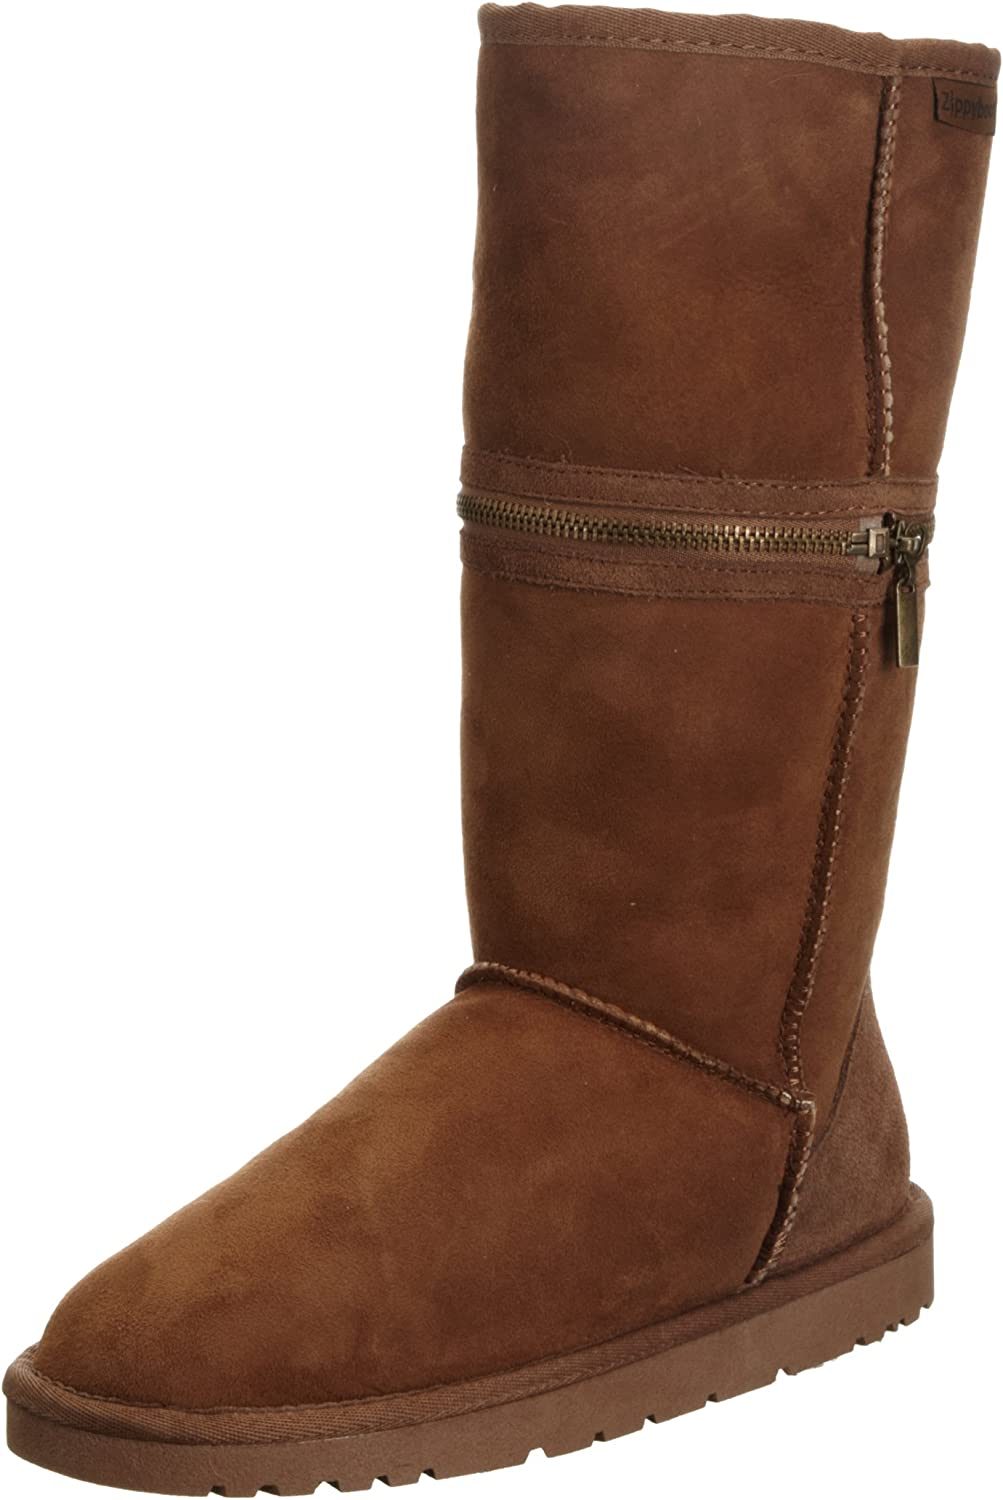 Redfoot Women's Zippyboot Pull On Boot